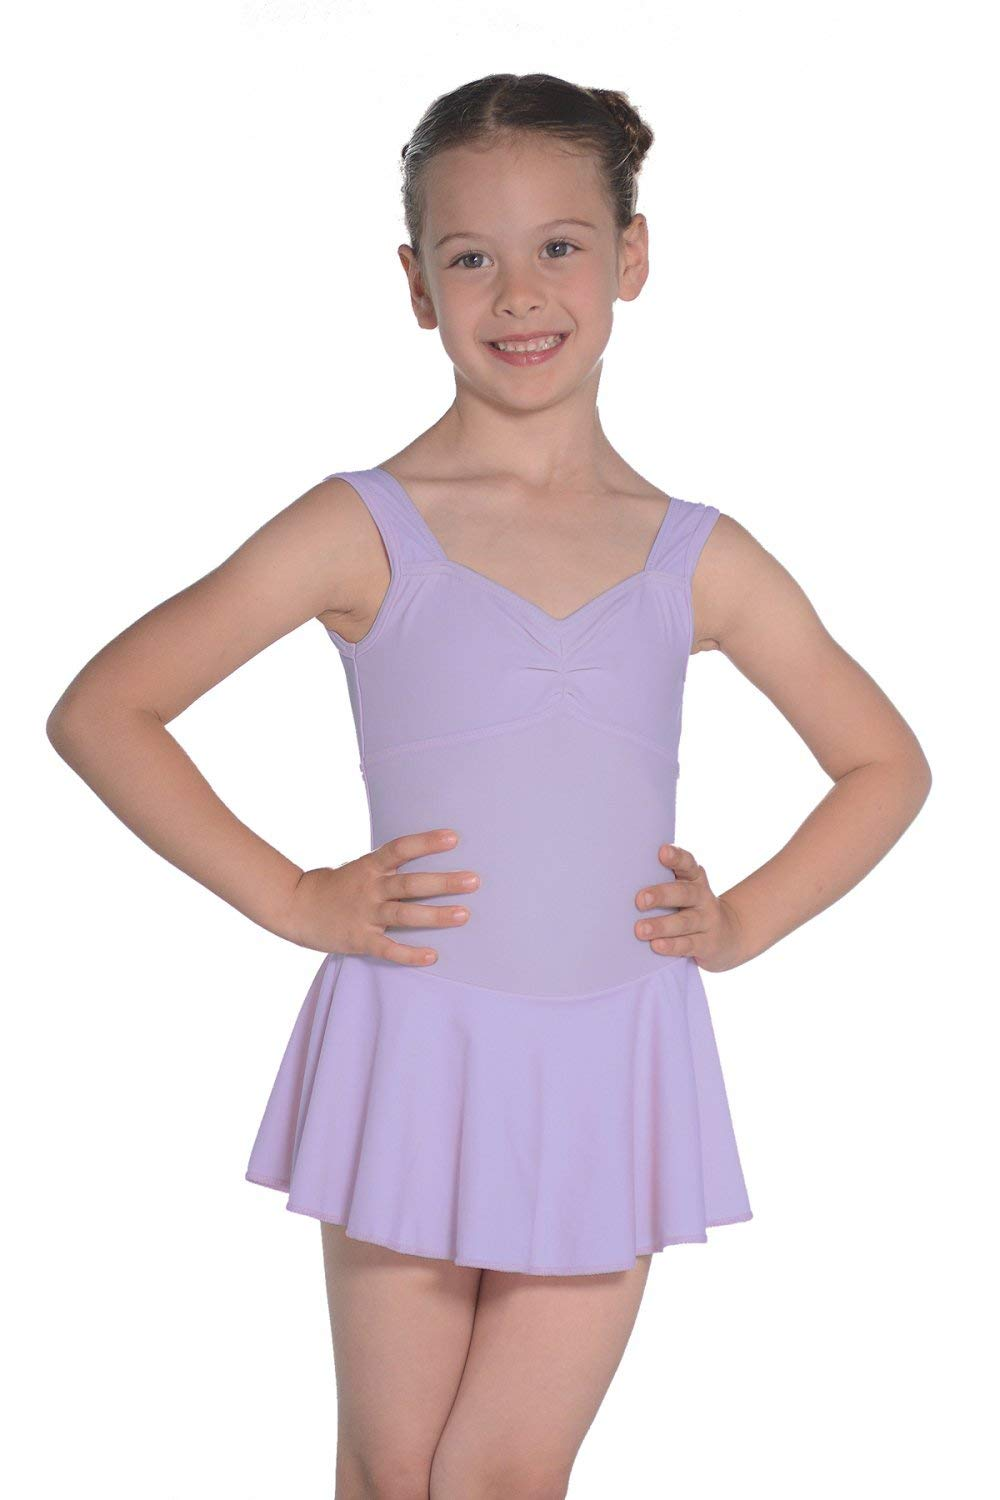 Roch Valley EMILIE Girls Skirted Leotard Pink Ages 2,3,4,5,6,7,8,9,10 years NEW